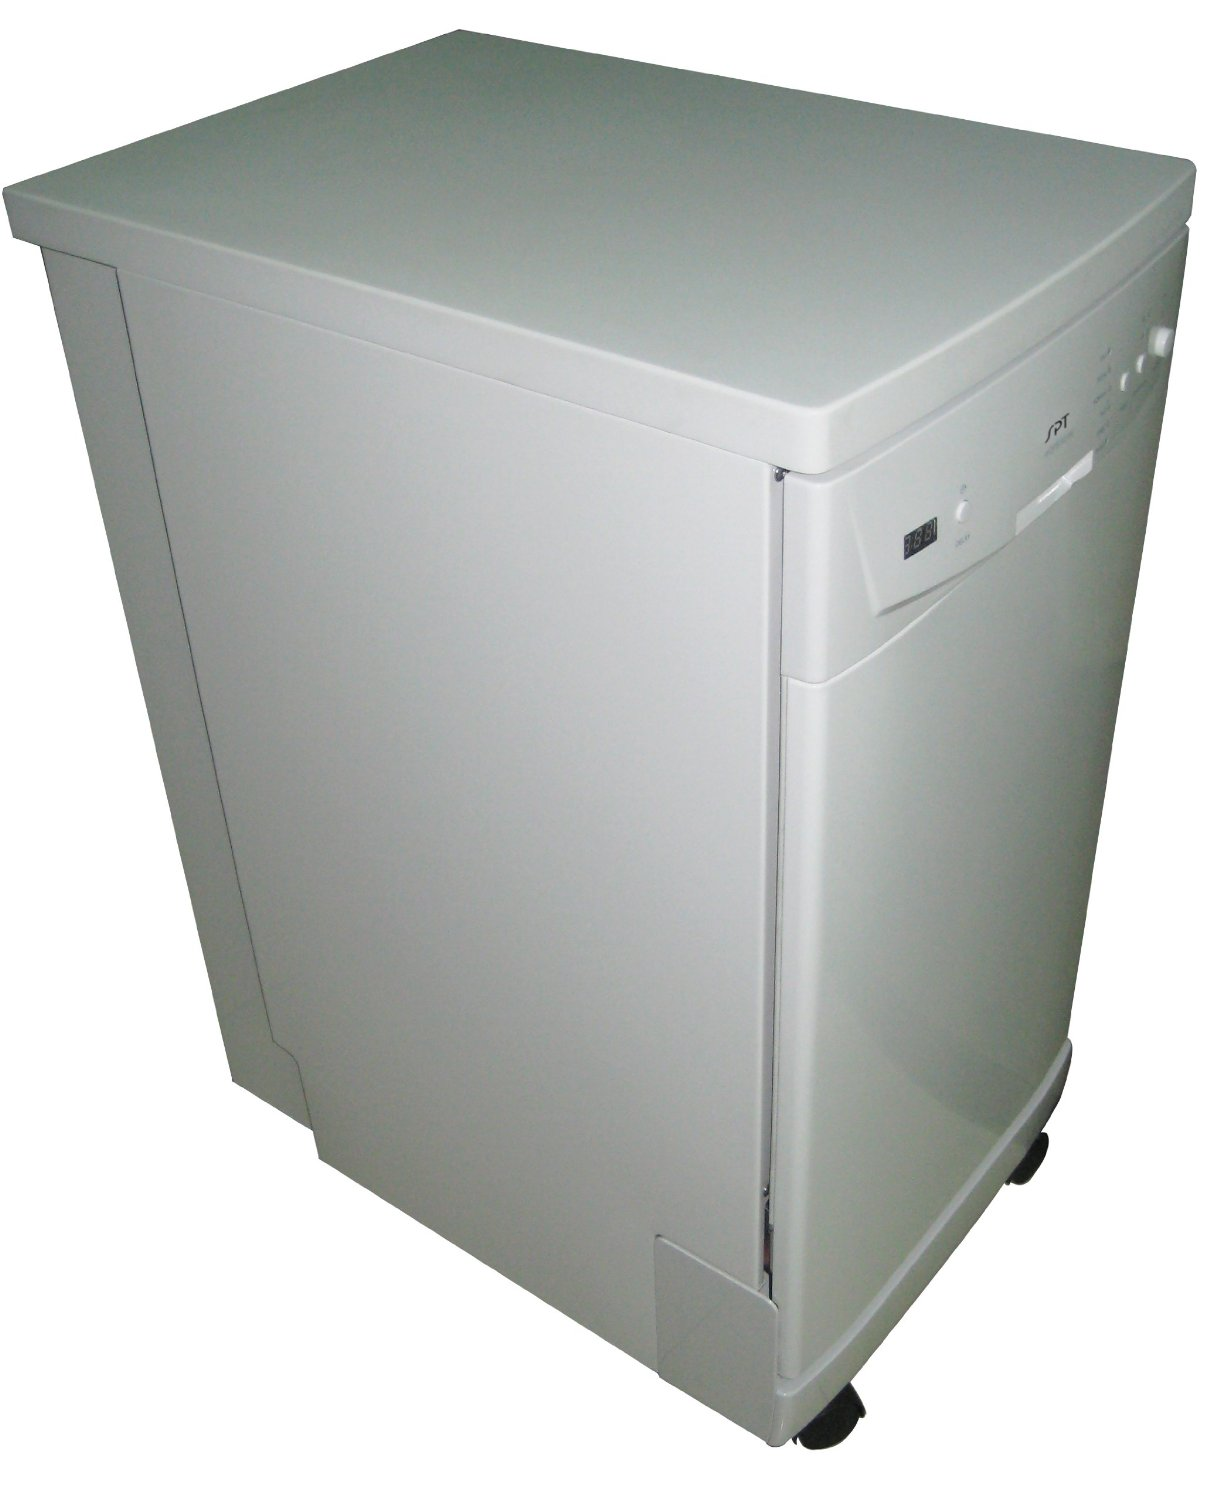 SPT SD 9241W Energy Star Portable Dishwasher, 18 Inch Features